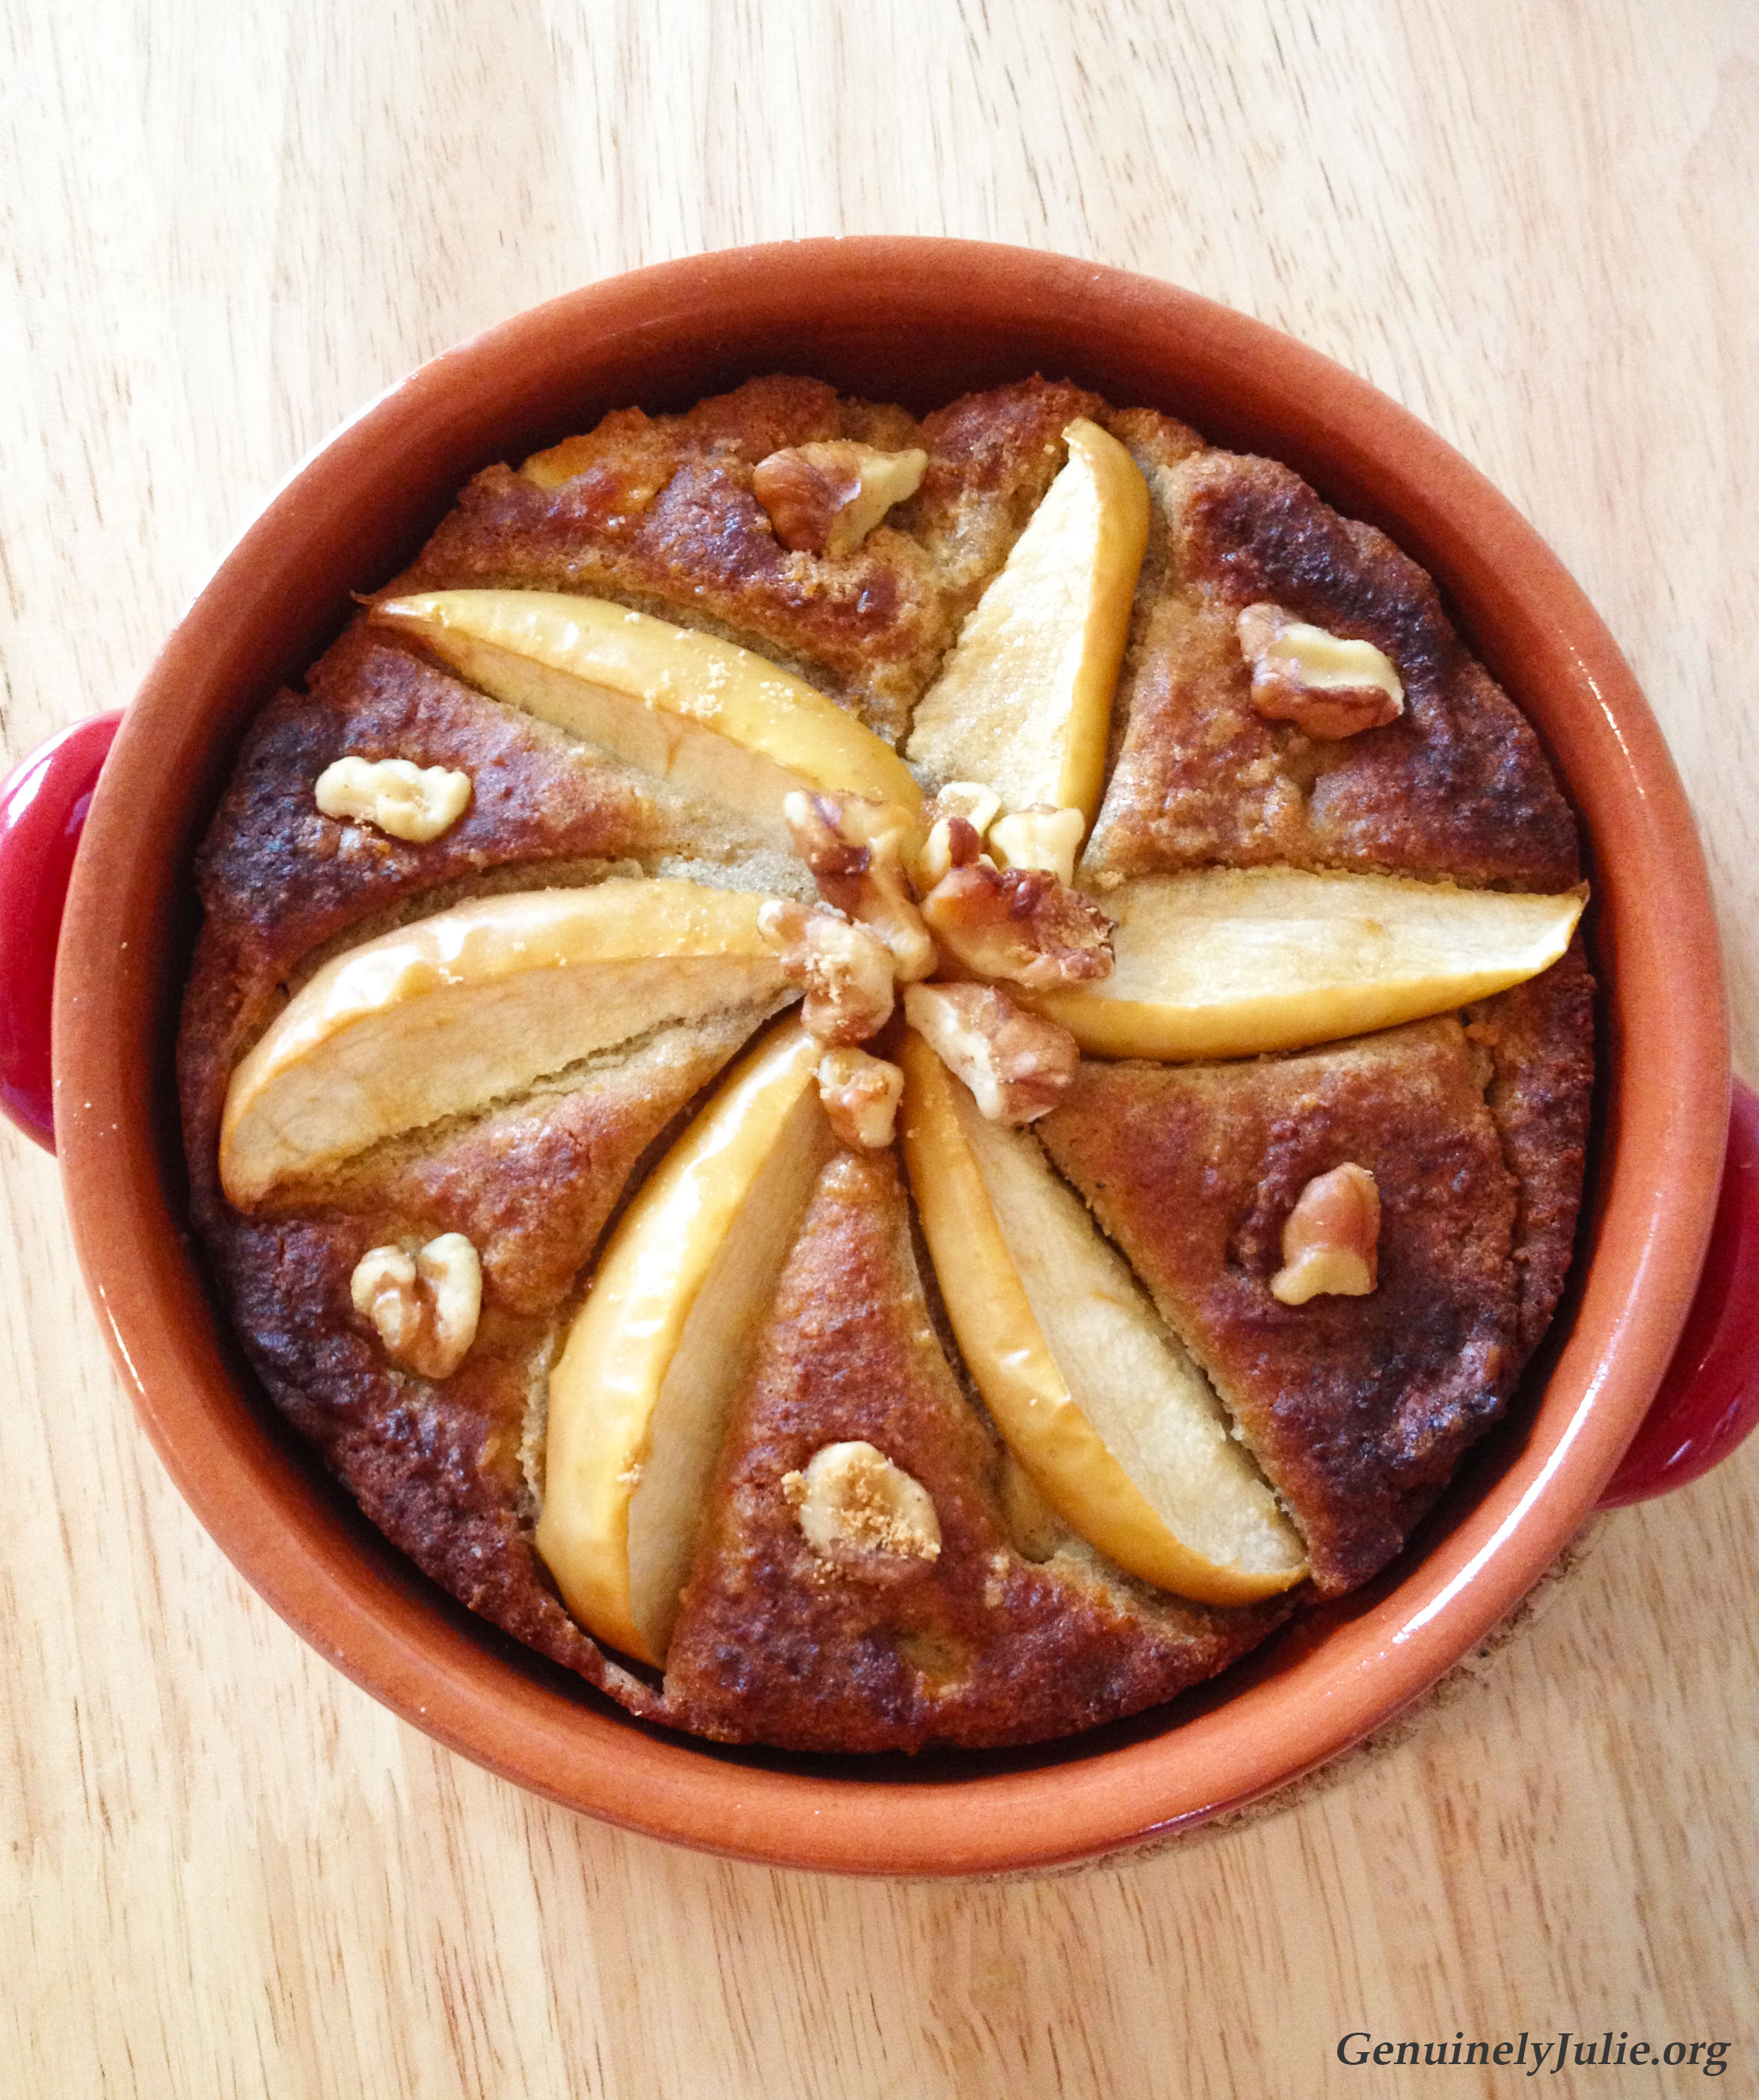 Apple Walnut EVOO cake 2